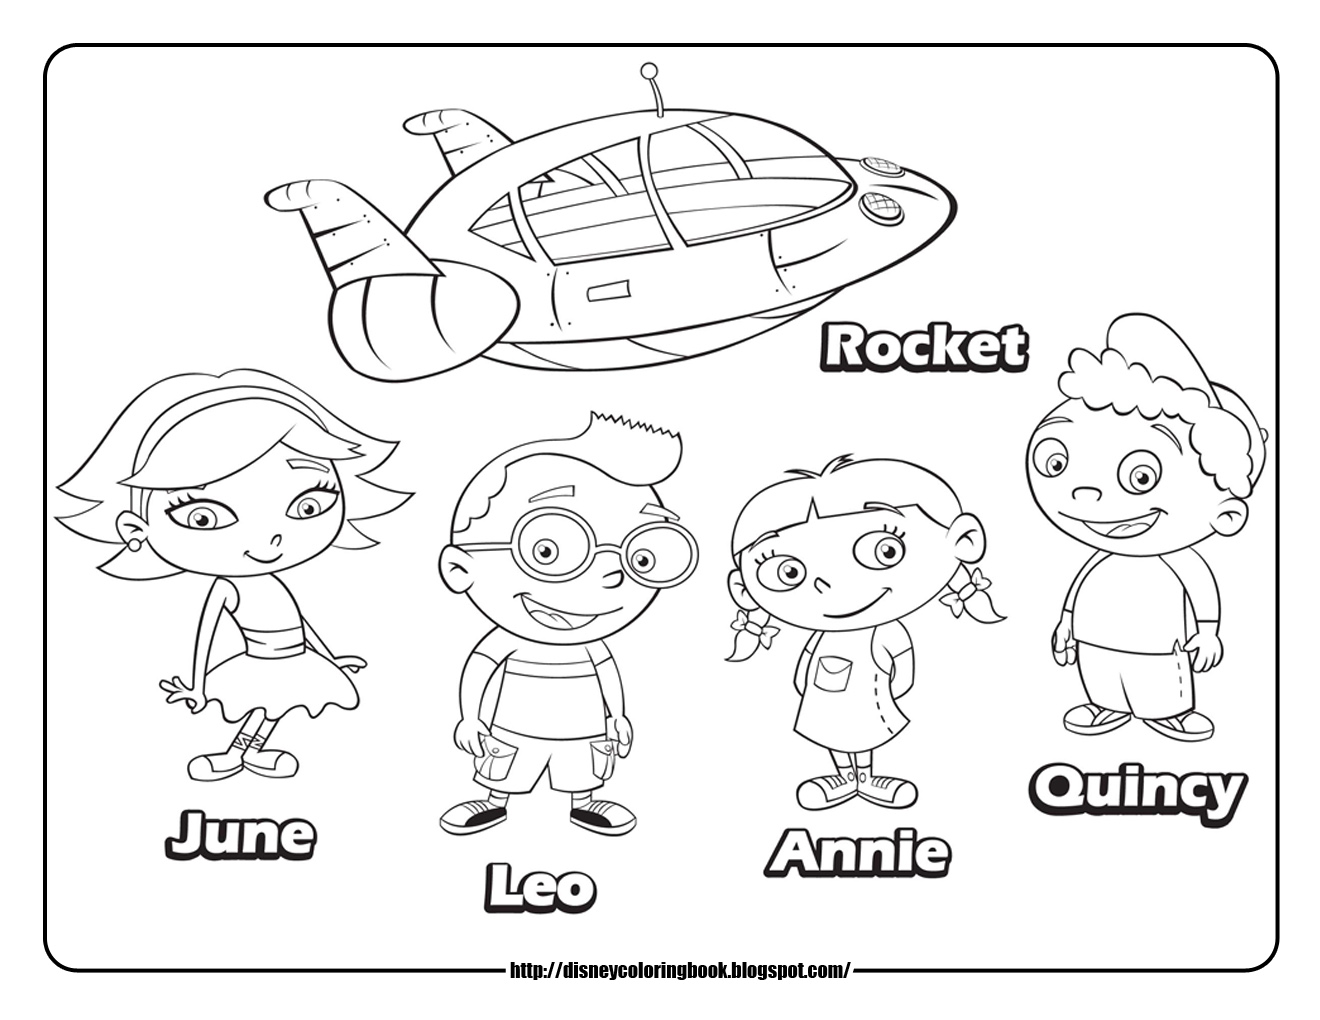 Little Einsteins Annie Coloring Pages Einsteins Coloring Pages